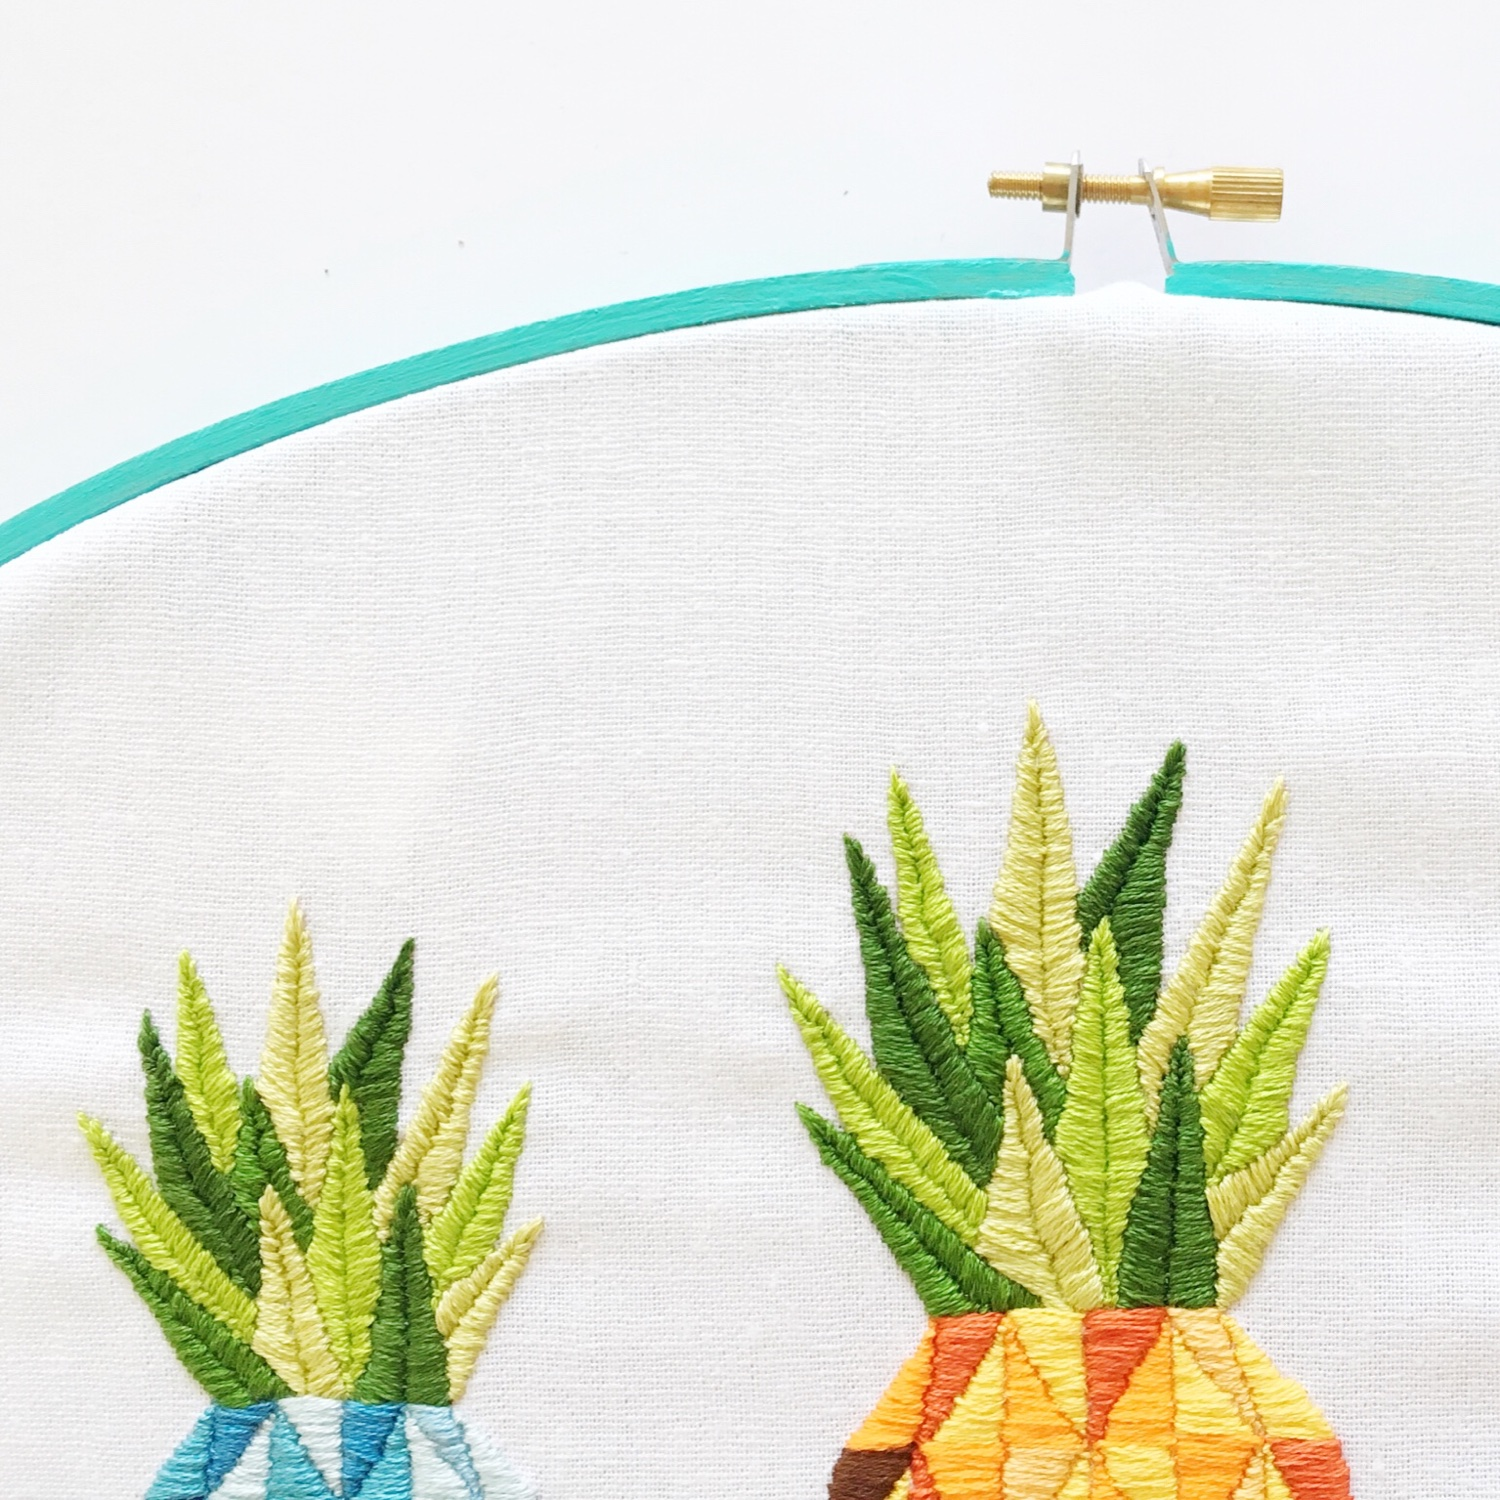 Leaves for blue pineapple embroidery | Hello! Hooray!